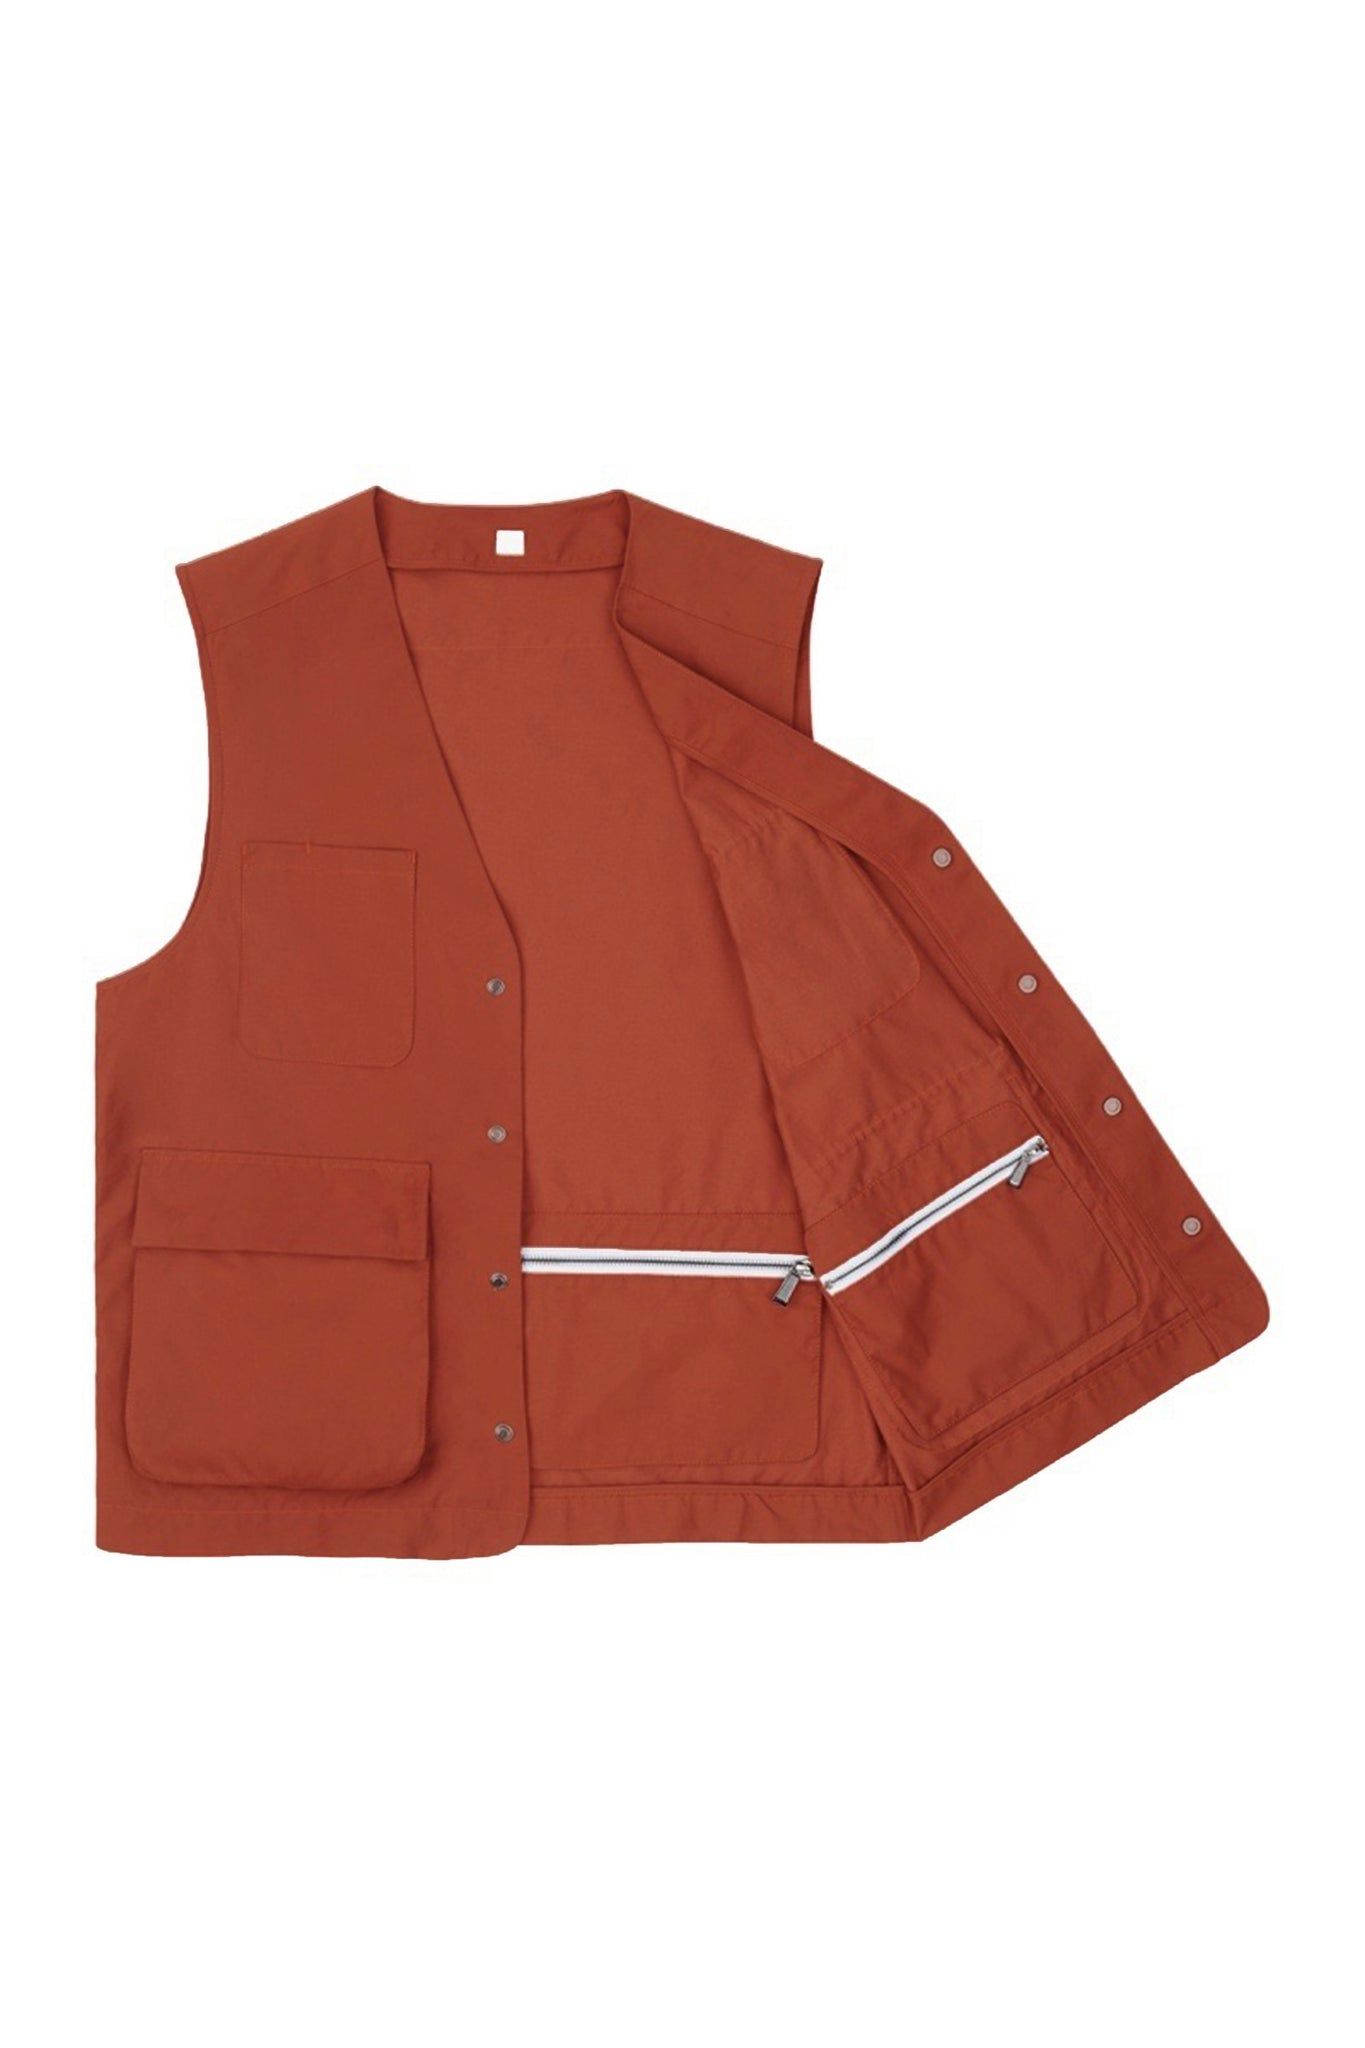 Brick Red Weatherproof Utility Vest